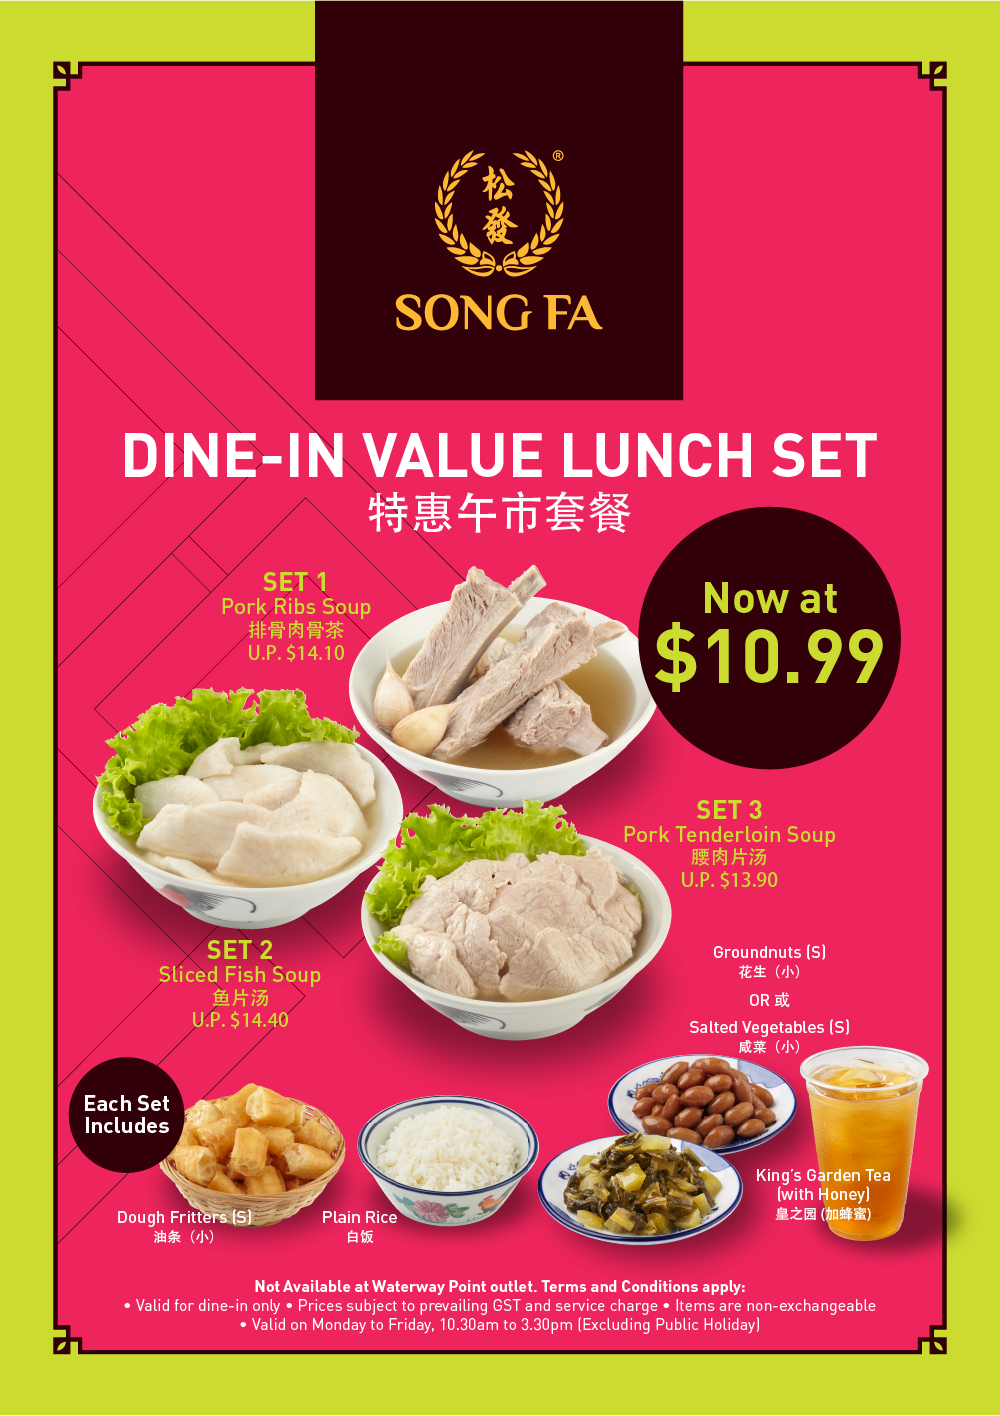 Song Fa Bak Kut Teh Promotion Value Lunch Set